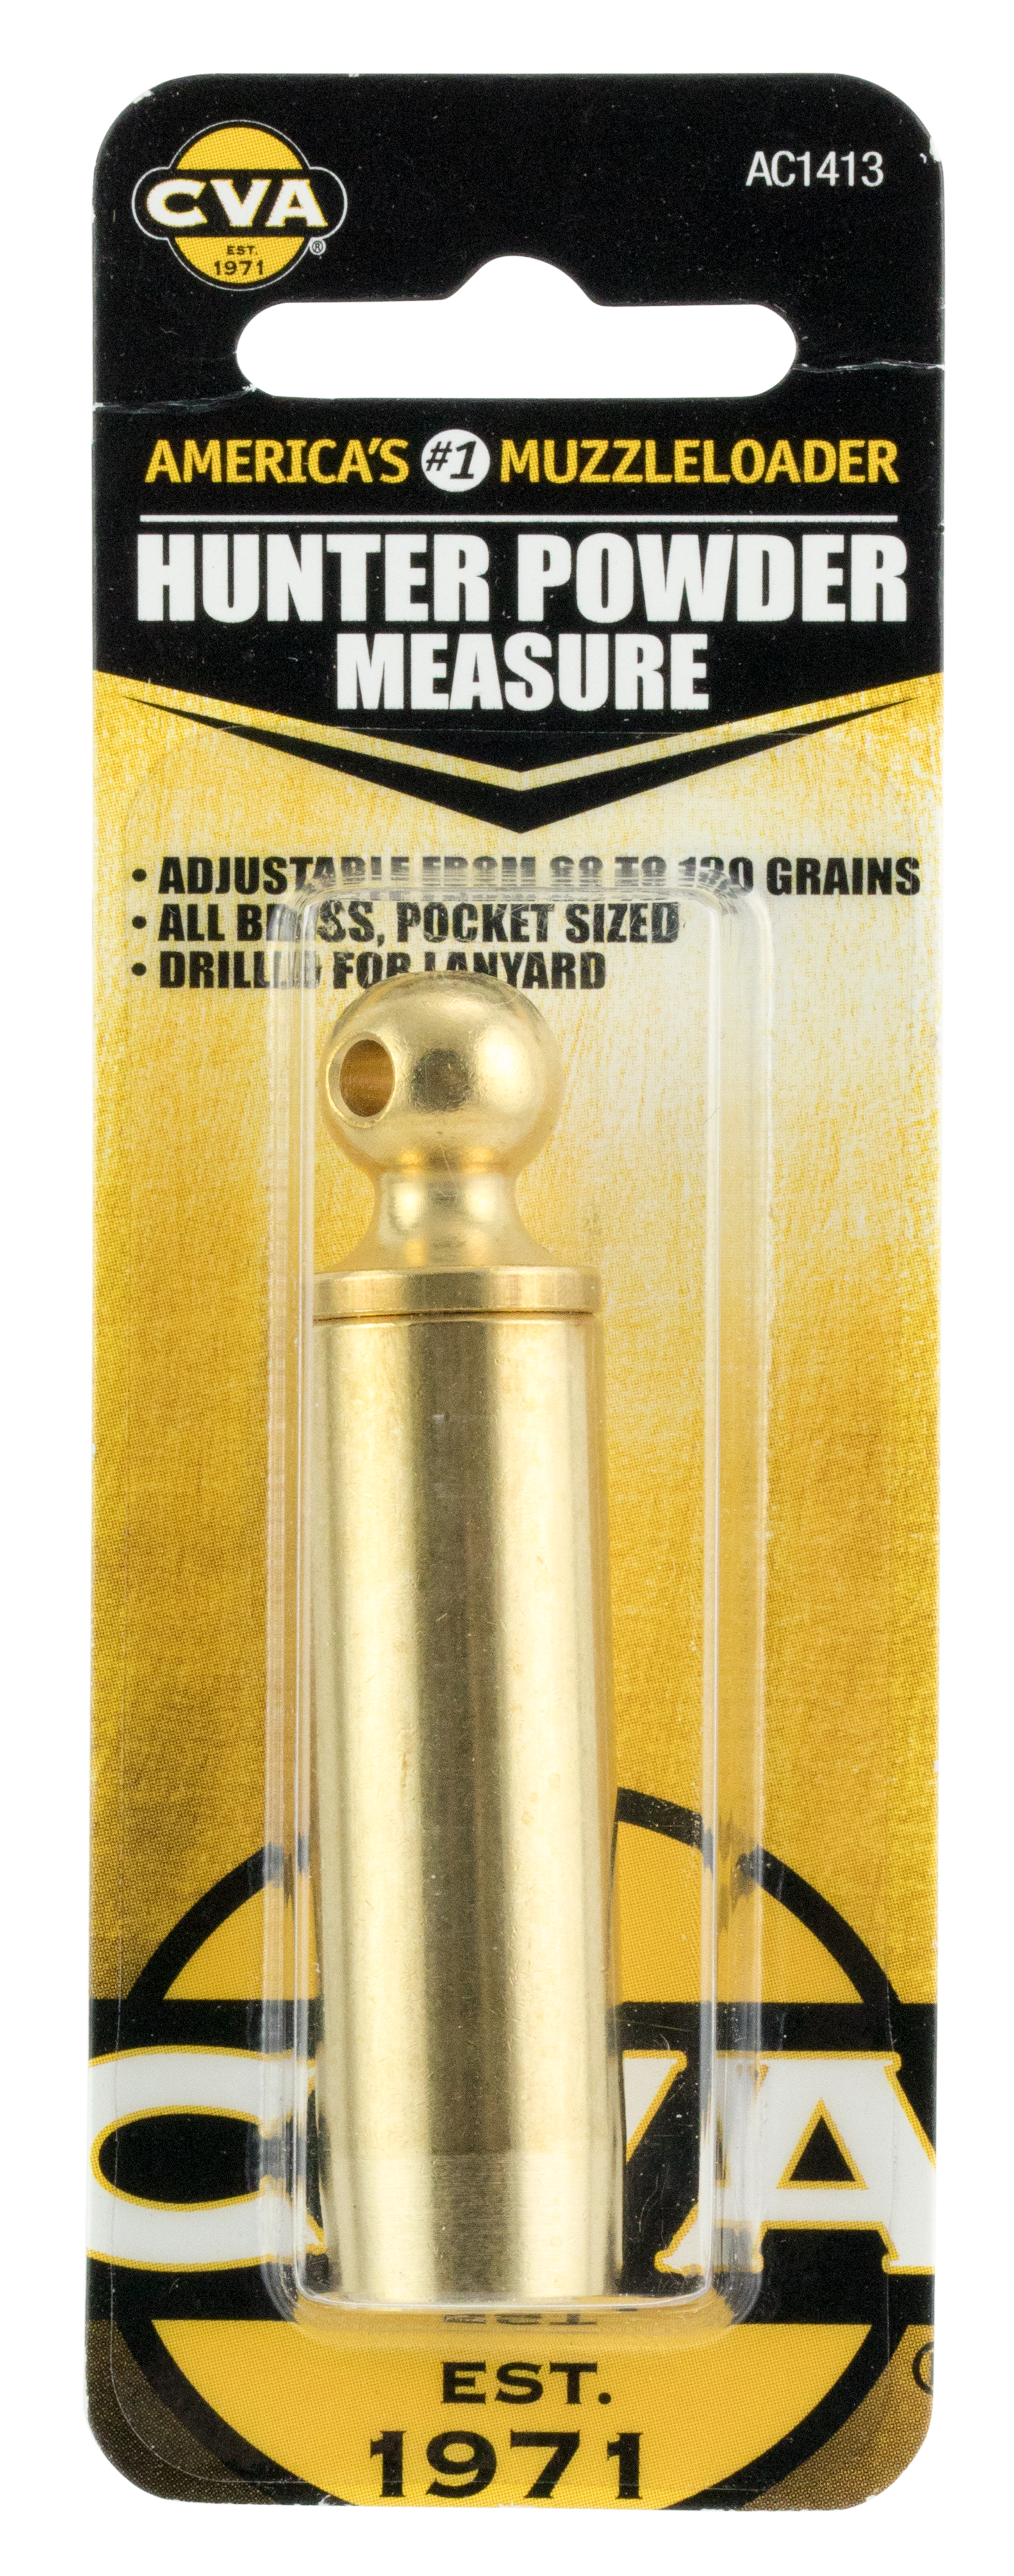 CVA AC1413 Hunter Powder Measure Black Powder Solid Brass  60-130 Grains